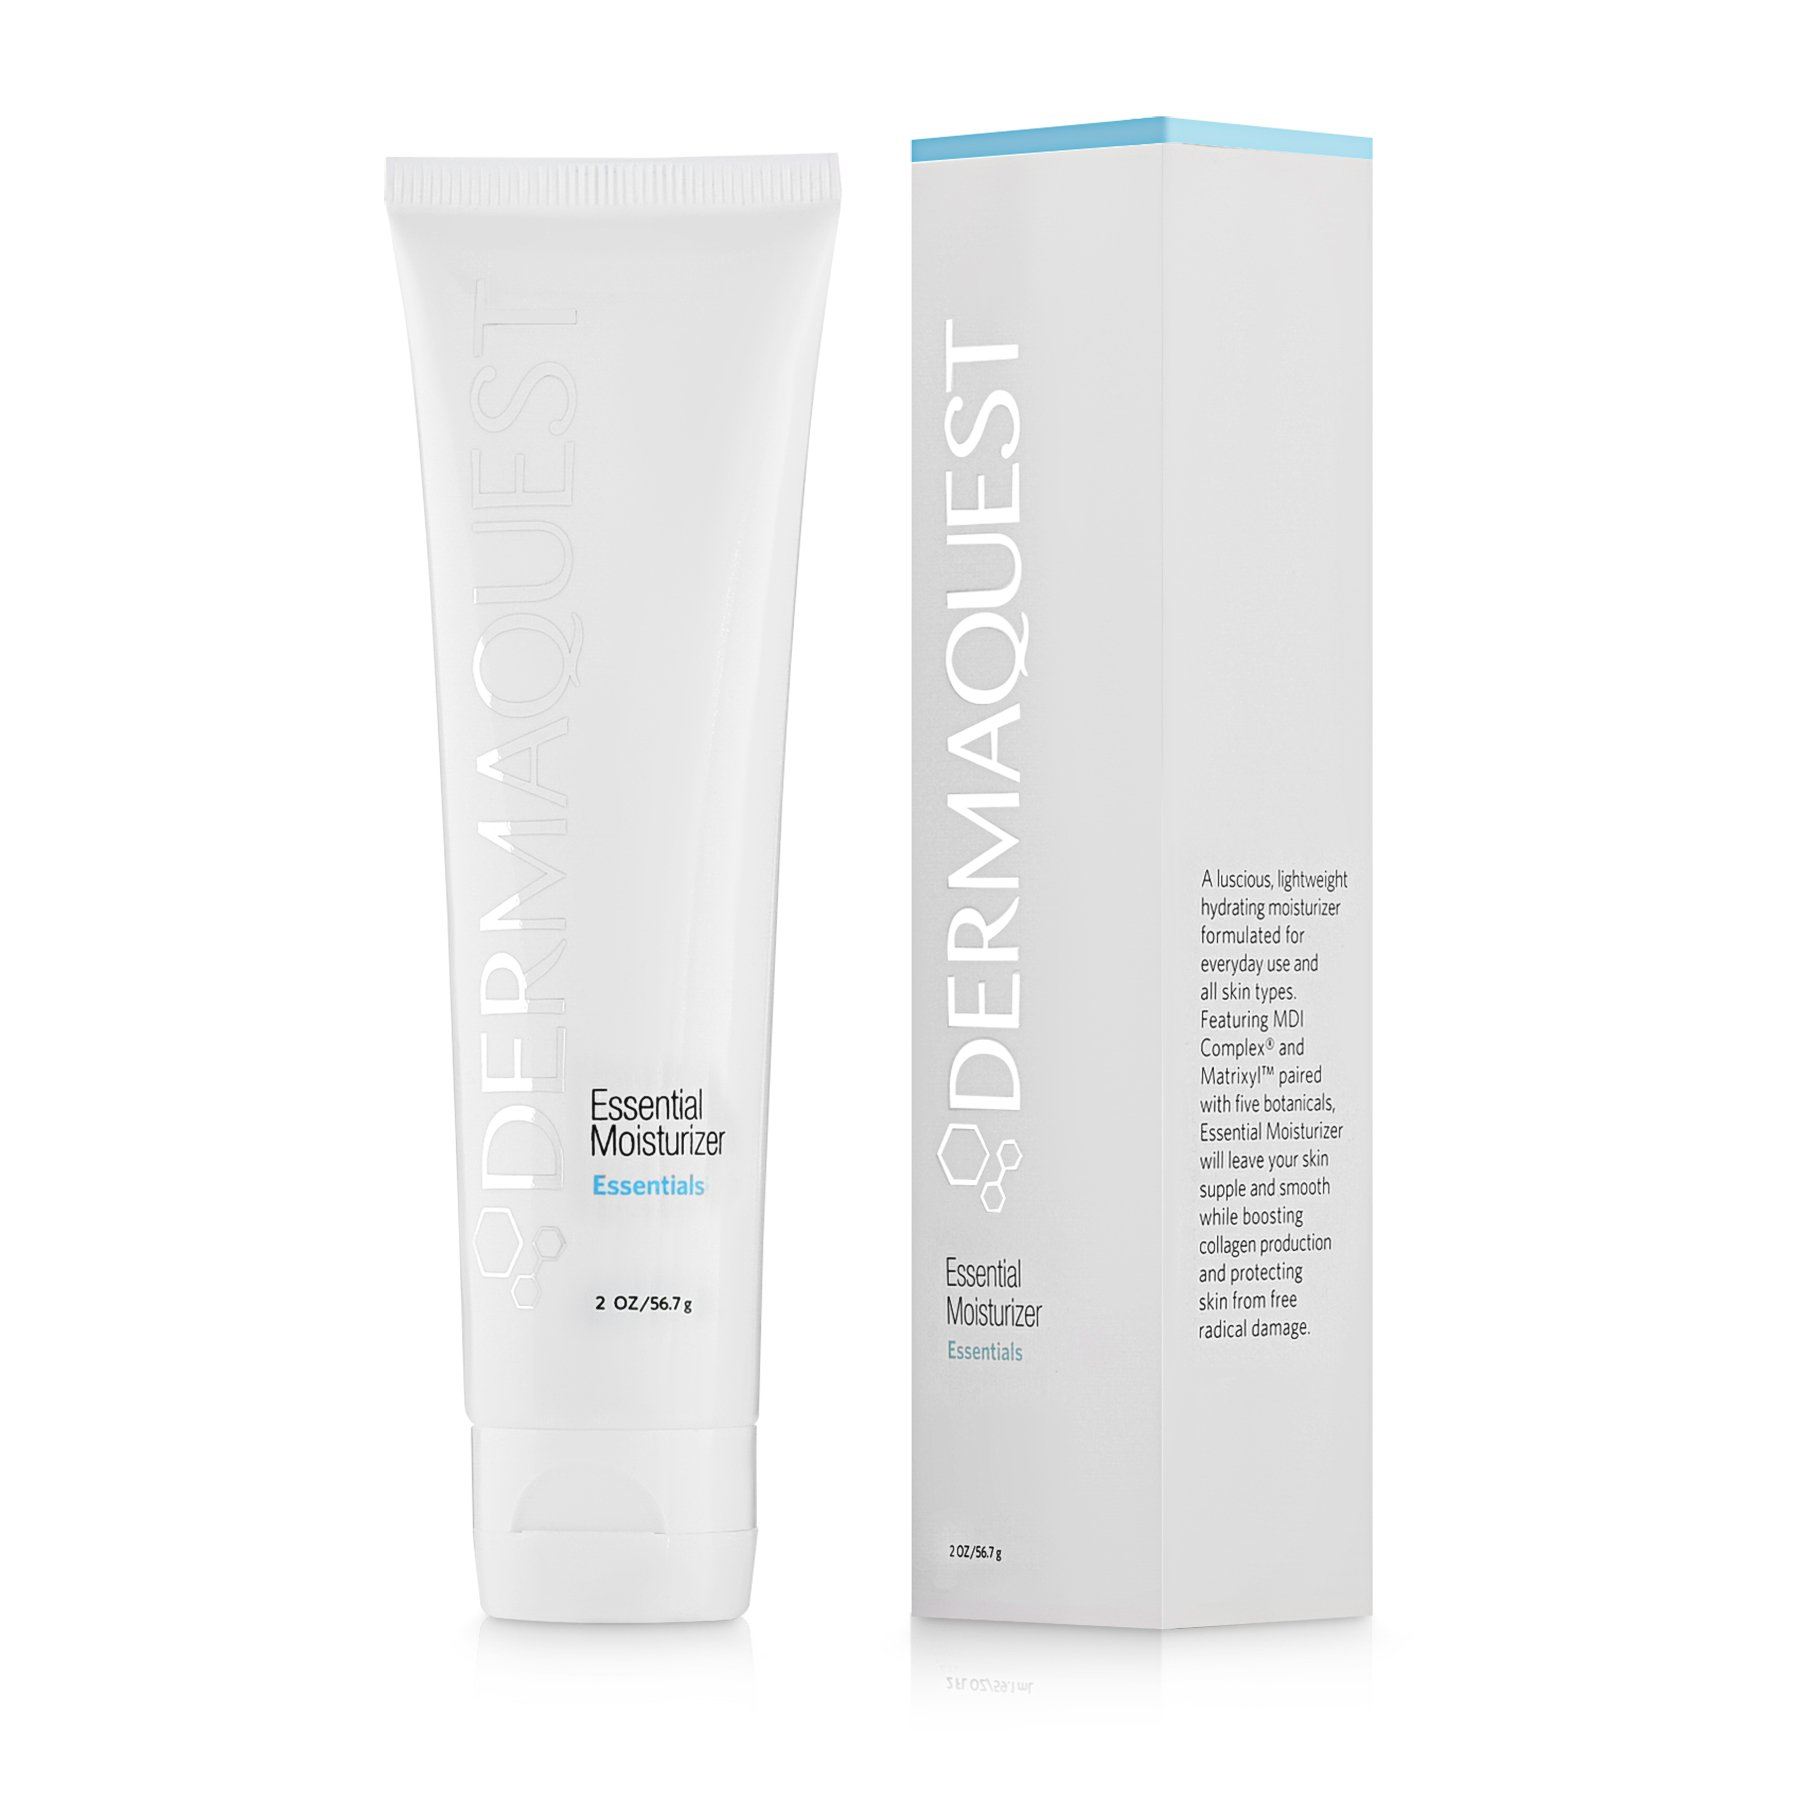 Amazon.com : DermaQuest Essential Lightweight Hydrating Moisturizer - Reduce Fine Lines and Fight Free Radical Damage, 2 oz : Beauty